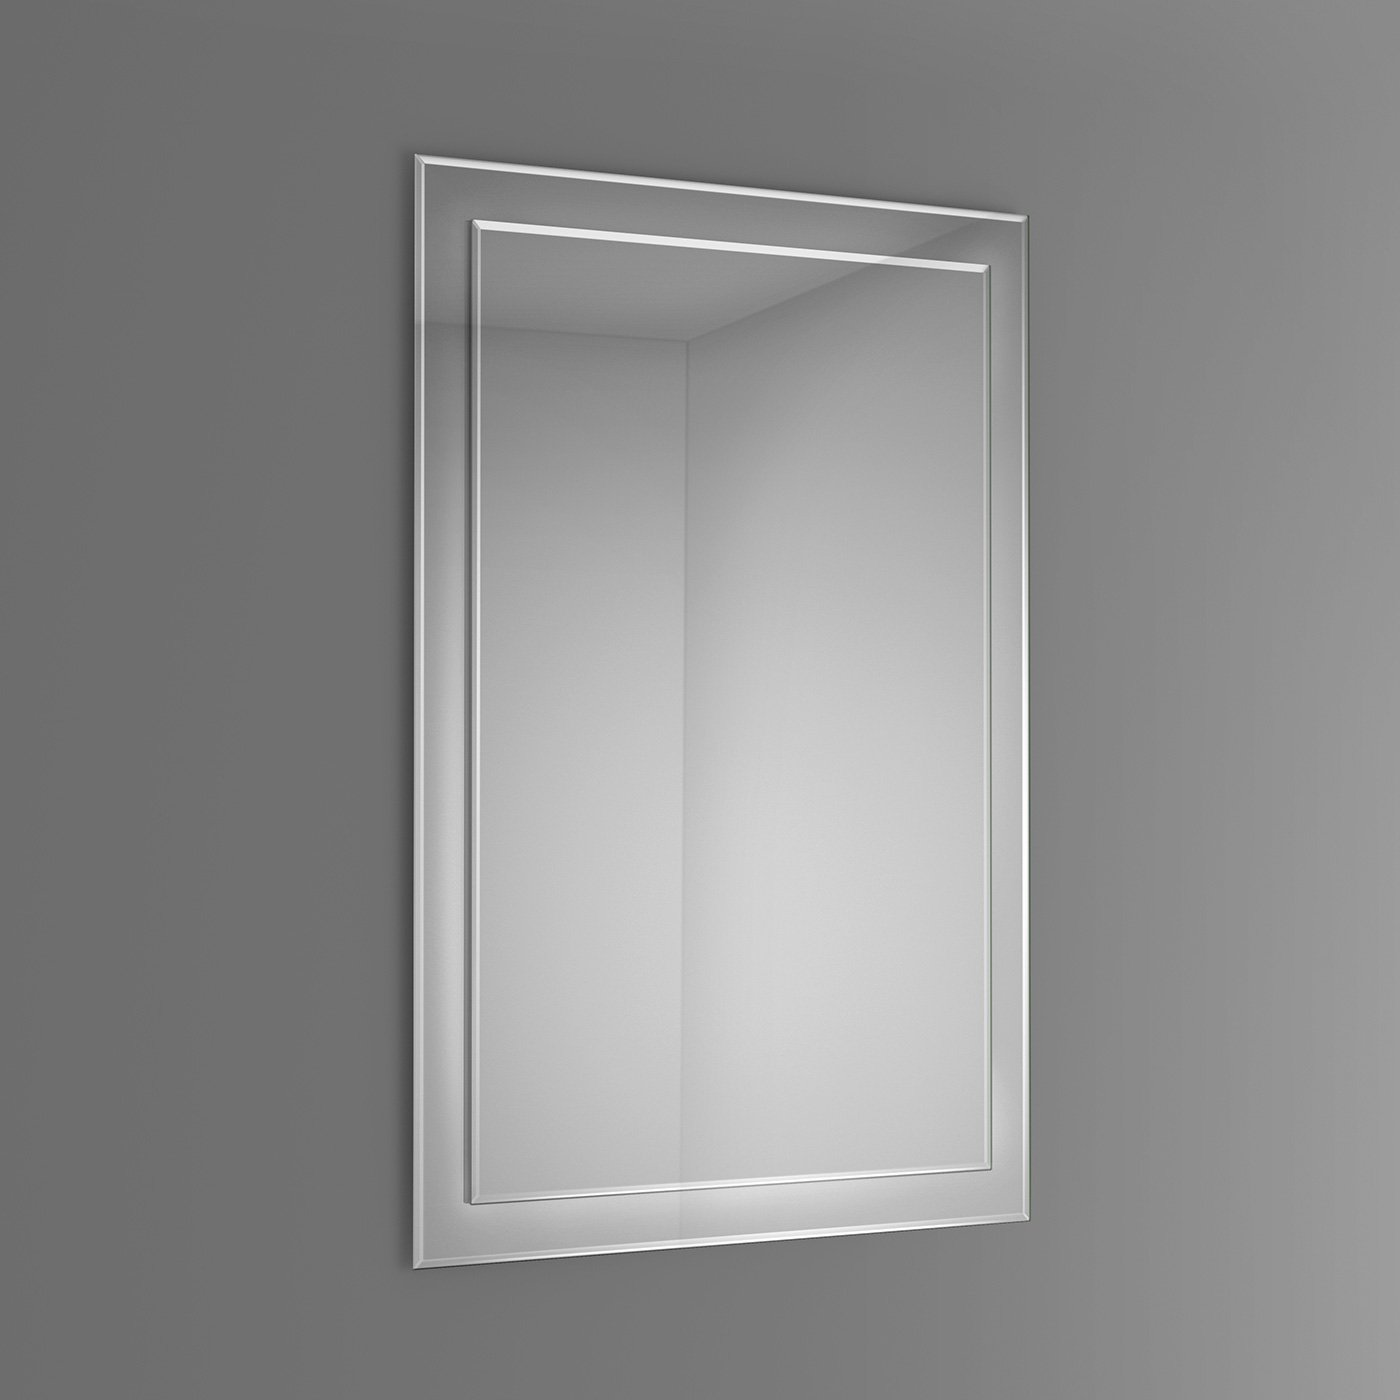 650 x 900 mm Rectangular Bevelled Designer Bathroom Wall Mirror MC147:  iBathUK: Amazon.co.uk: Kitchen & Home